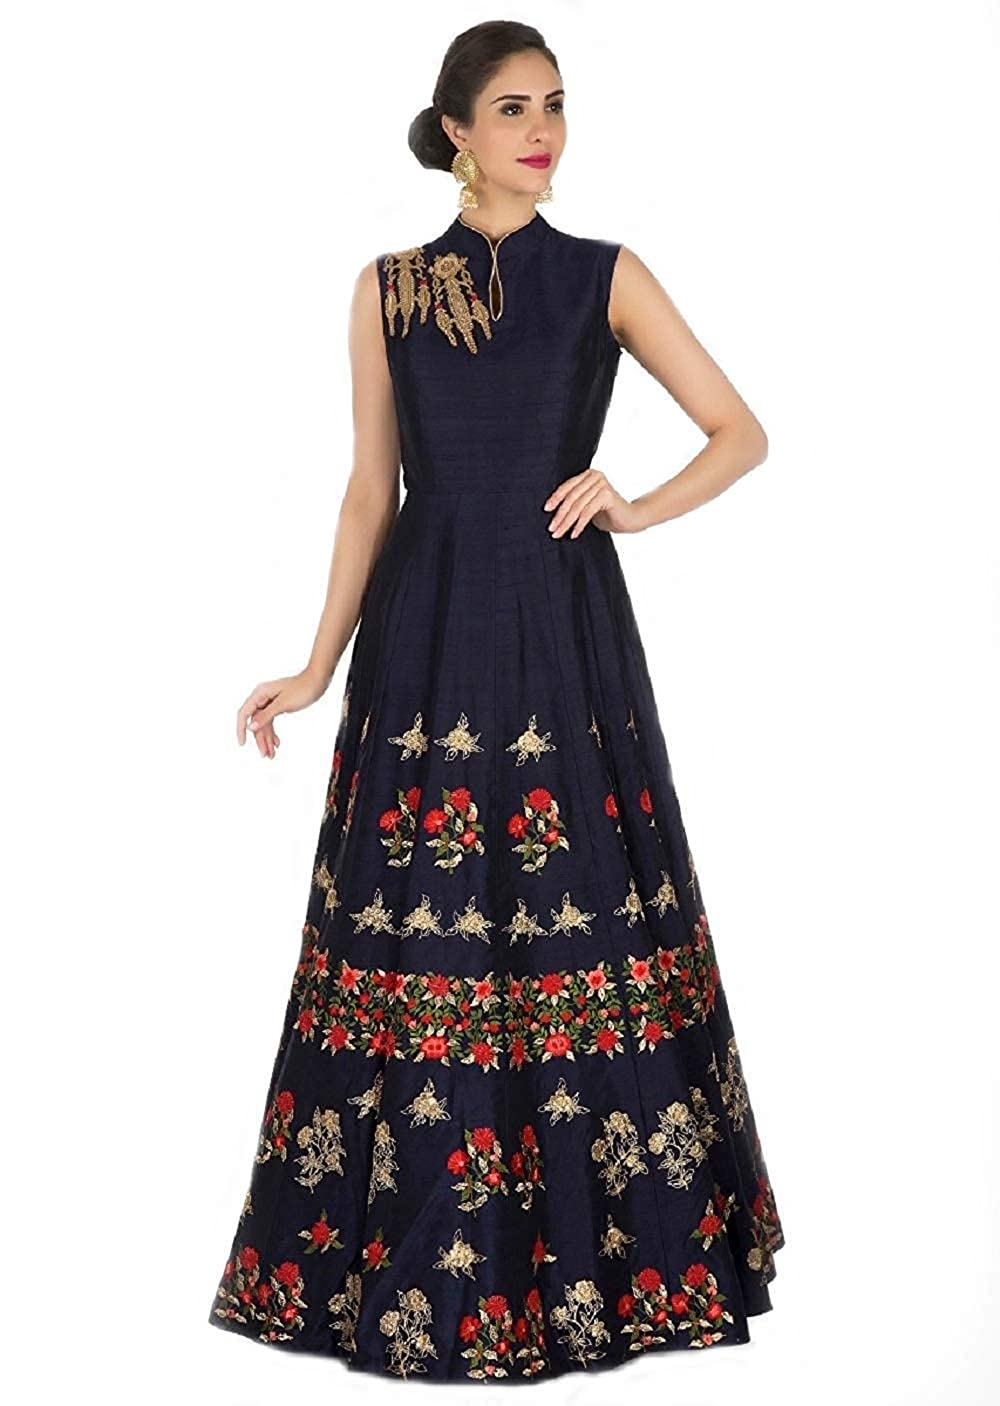 361095cb80 Queen of India affeta Silk Embroidered Semi-Stitched Anarkali Gown ...